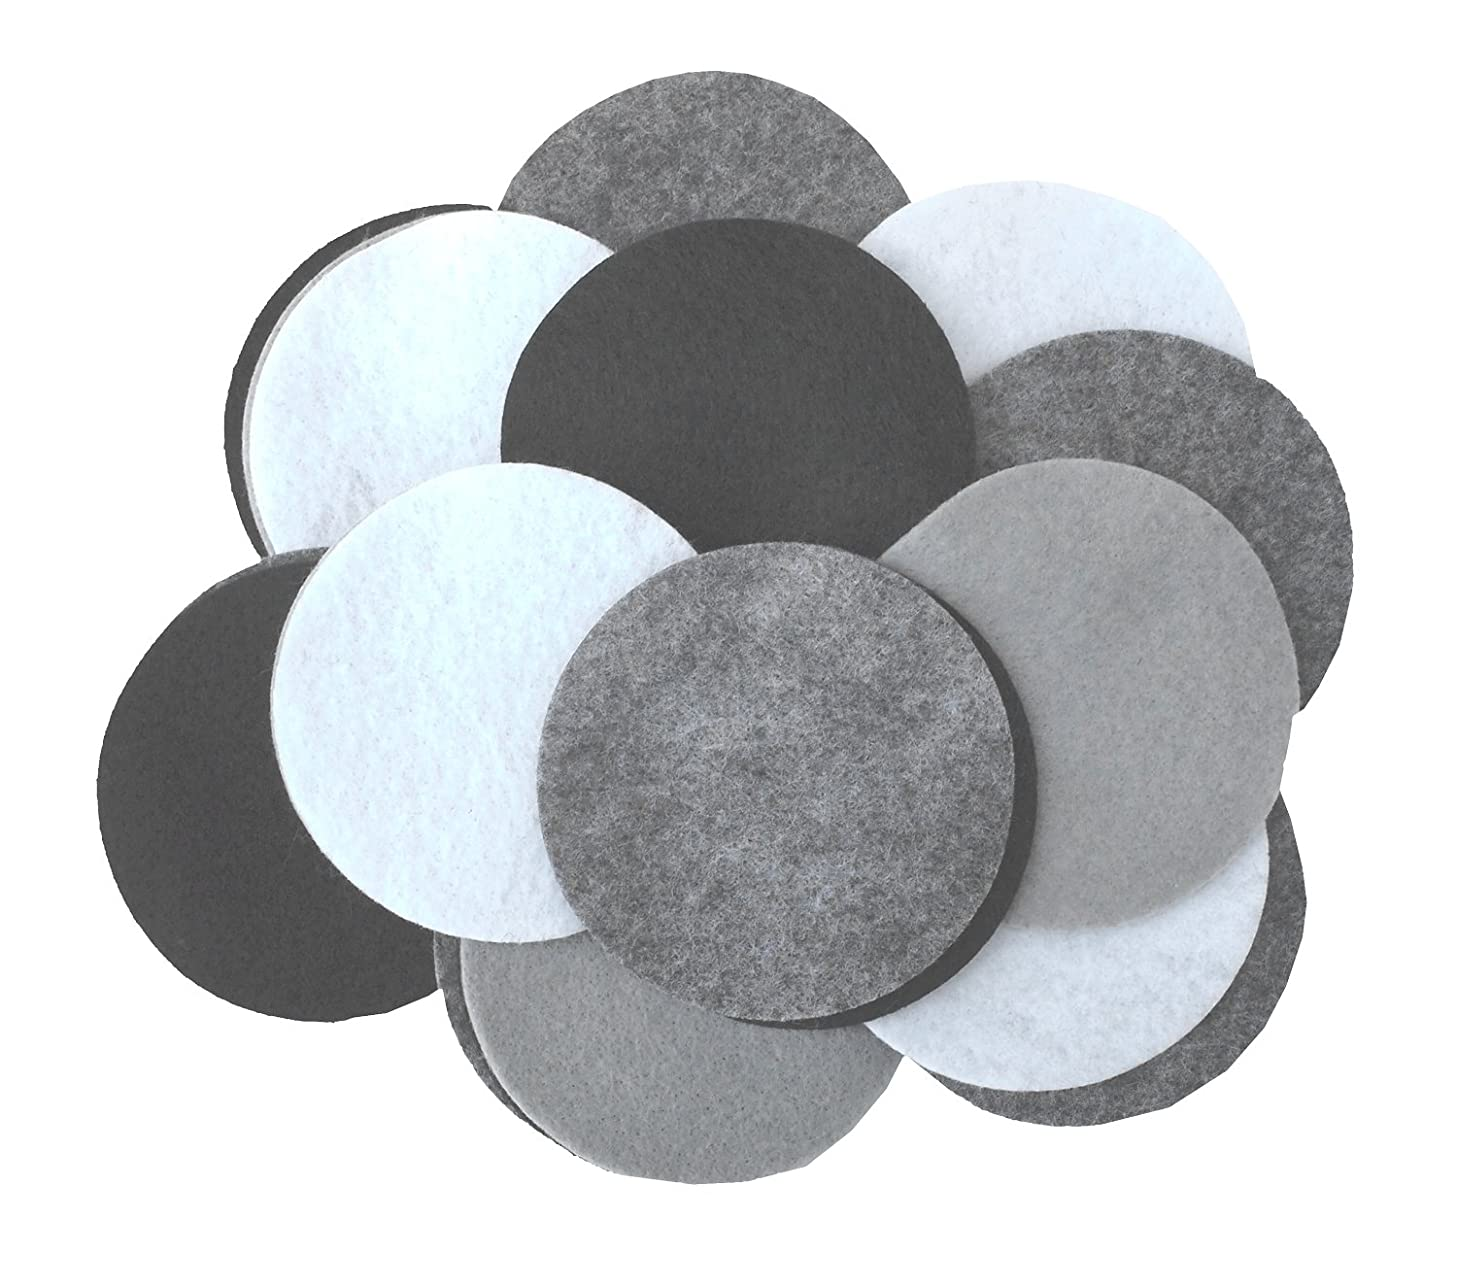 Playfully Ever After 3 Inch 30pc Felt Circles Color Combo Pack with Black, Gray, Charcoal, White